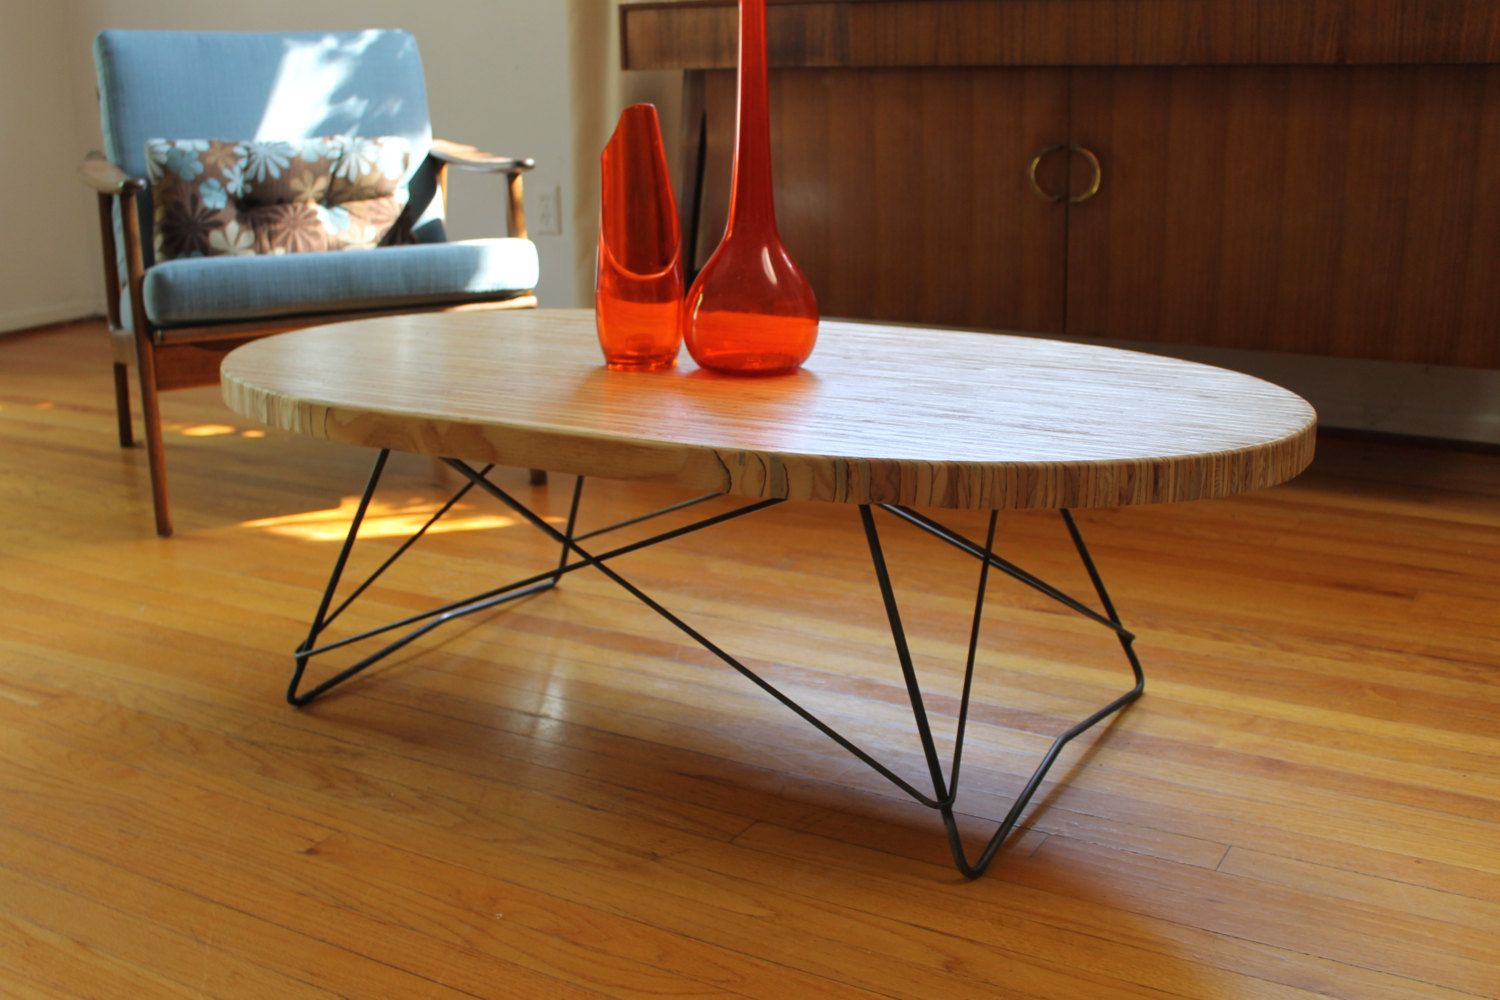 Popular Items For Coffee Table Base On Etsy Coffee Table Mid Century Style Coffee Table Raw Steel Furniture